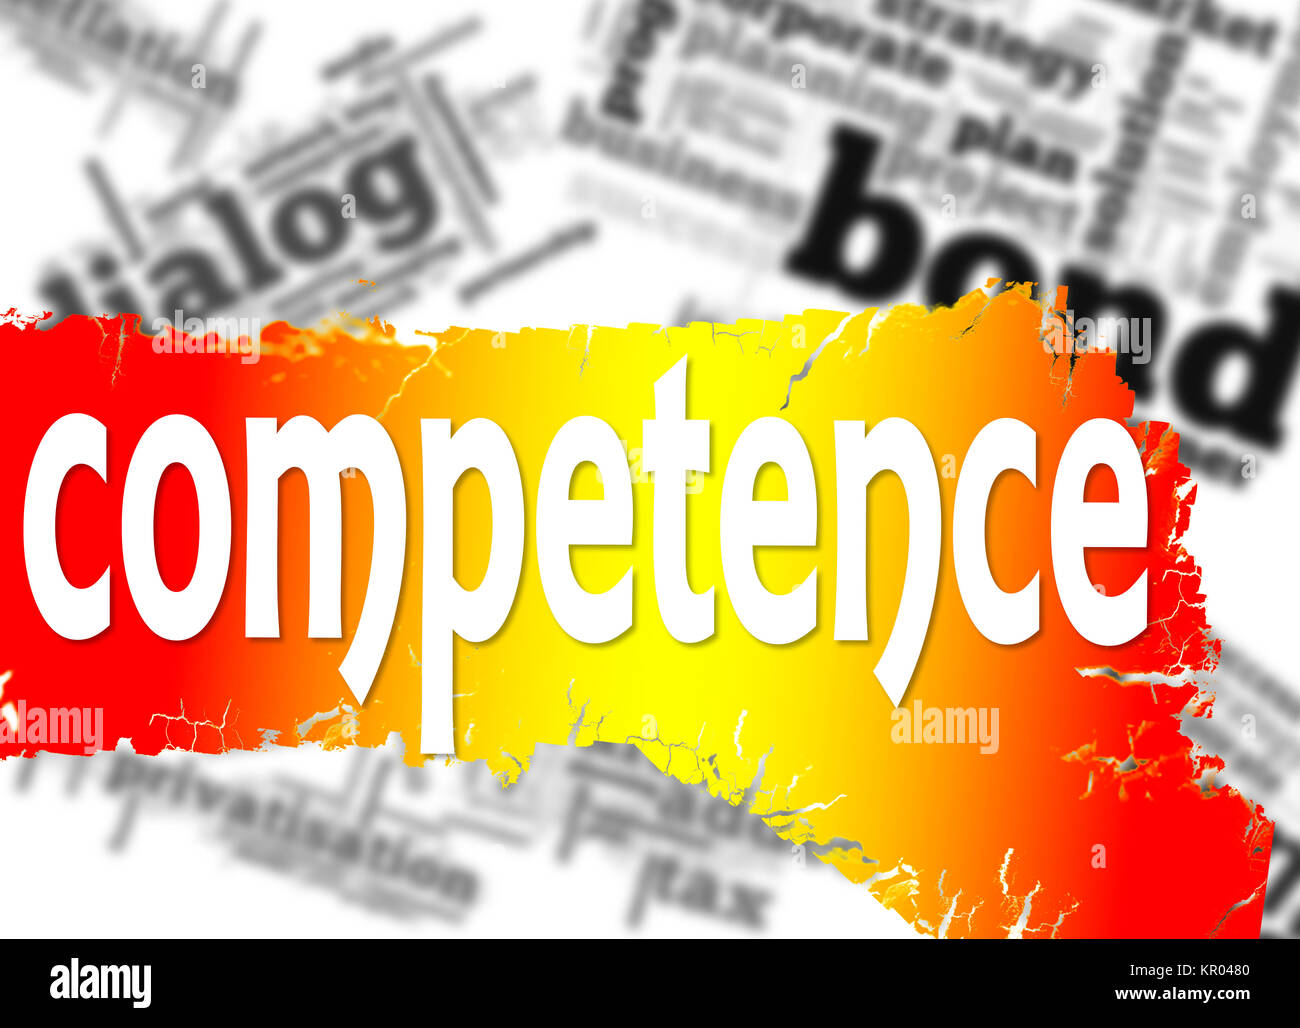 Word cloud with competence word - Stock Image